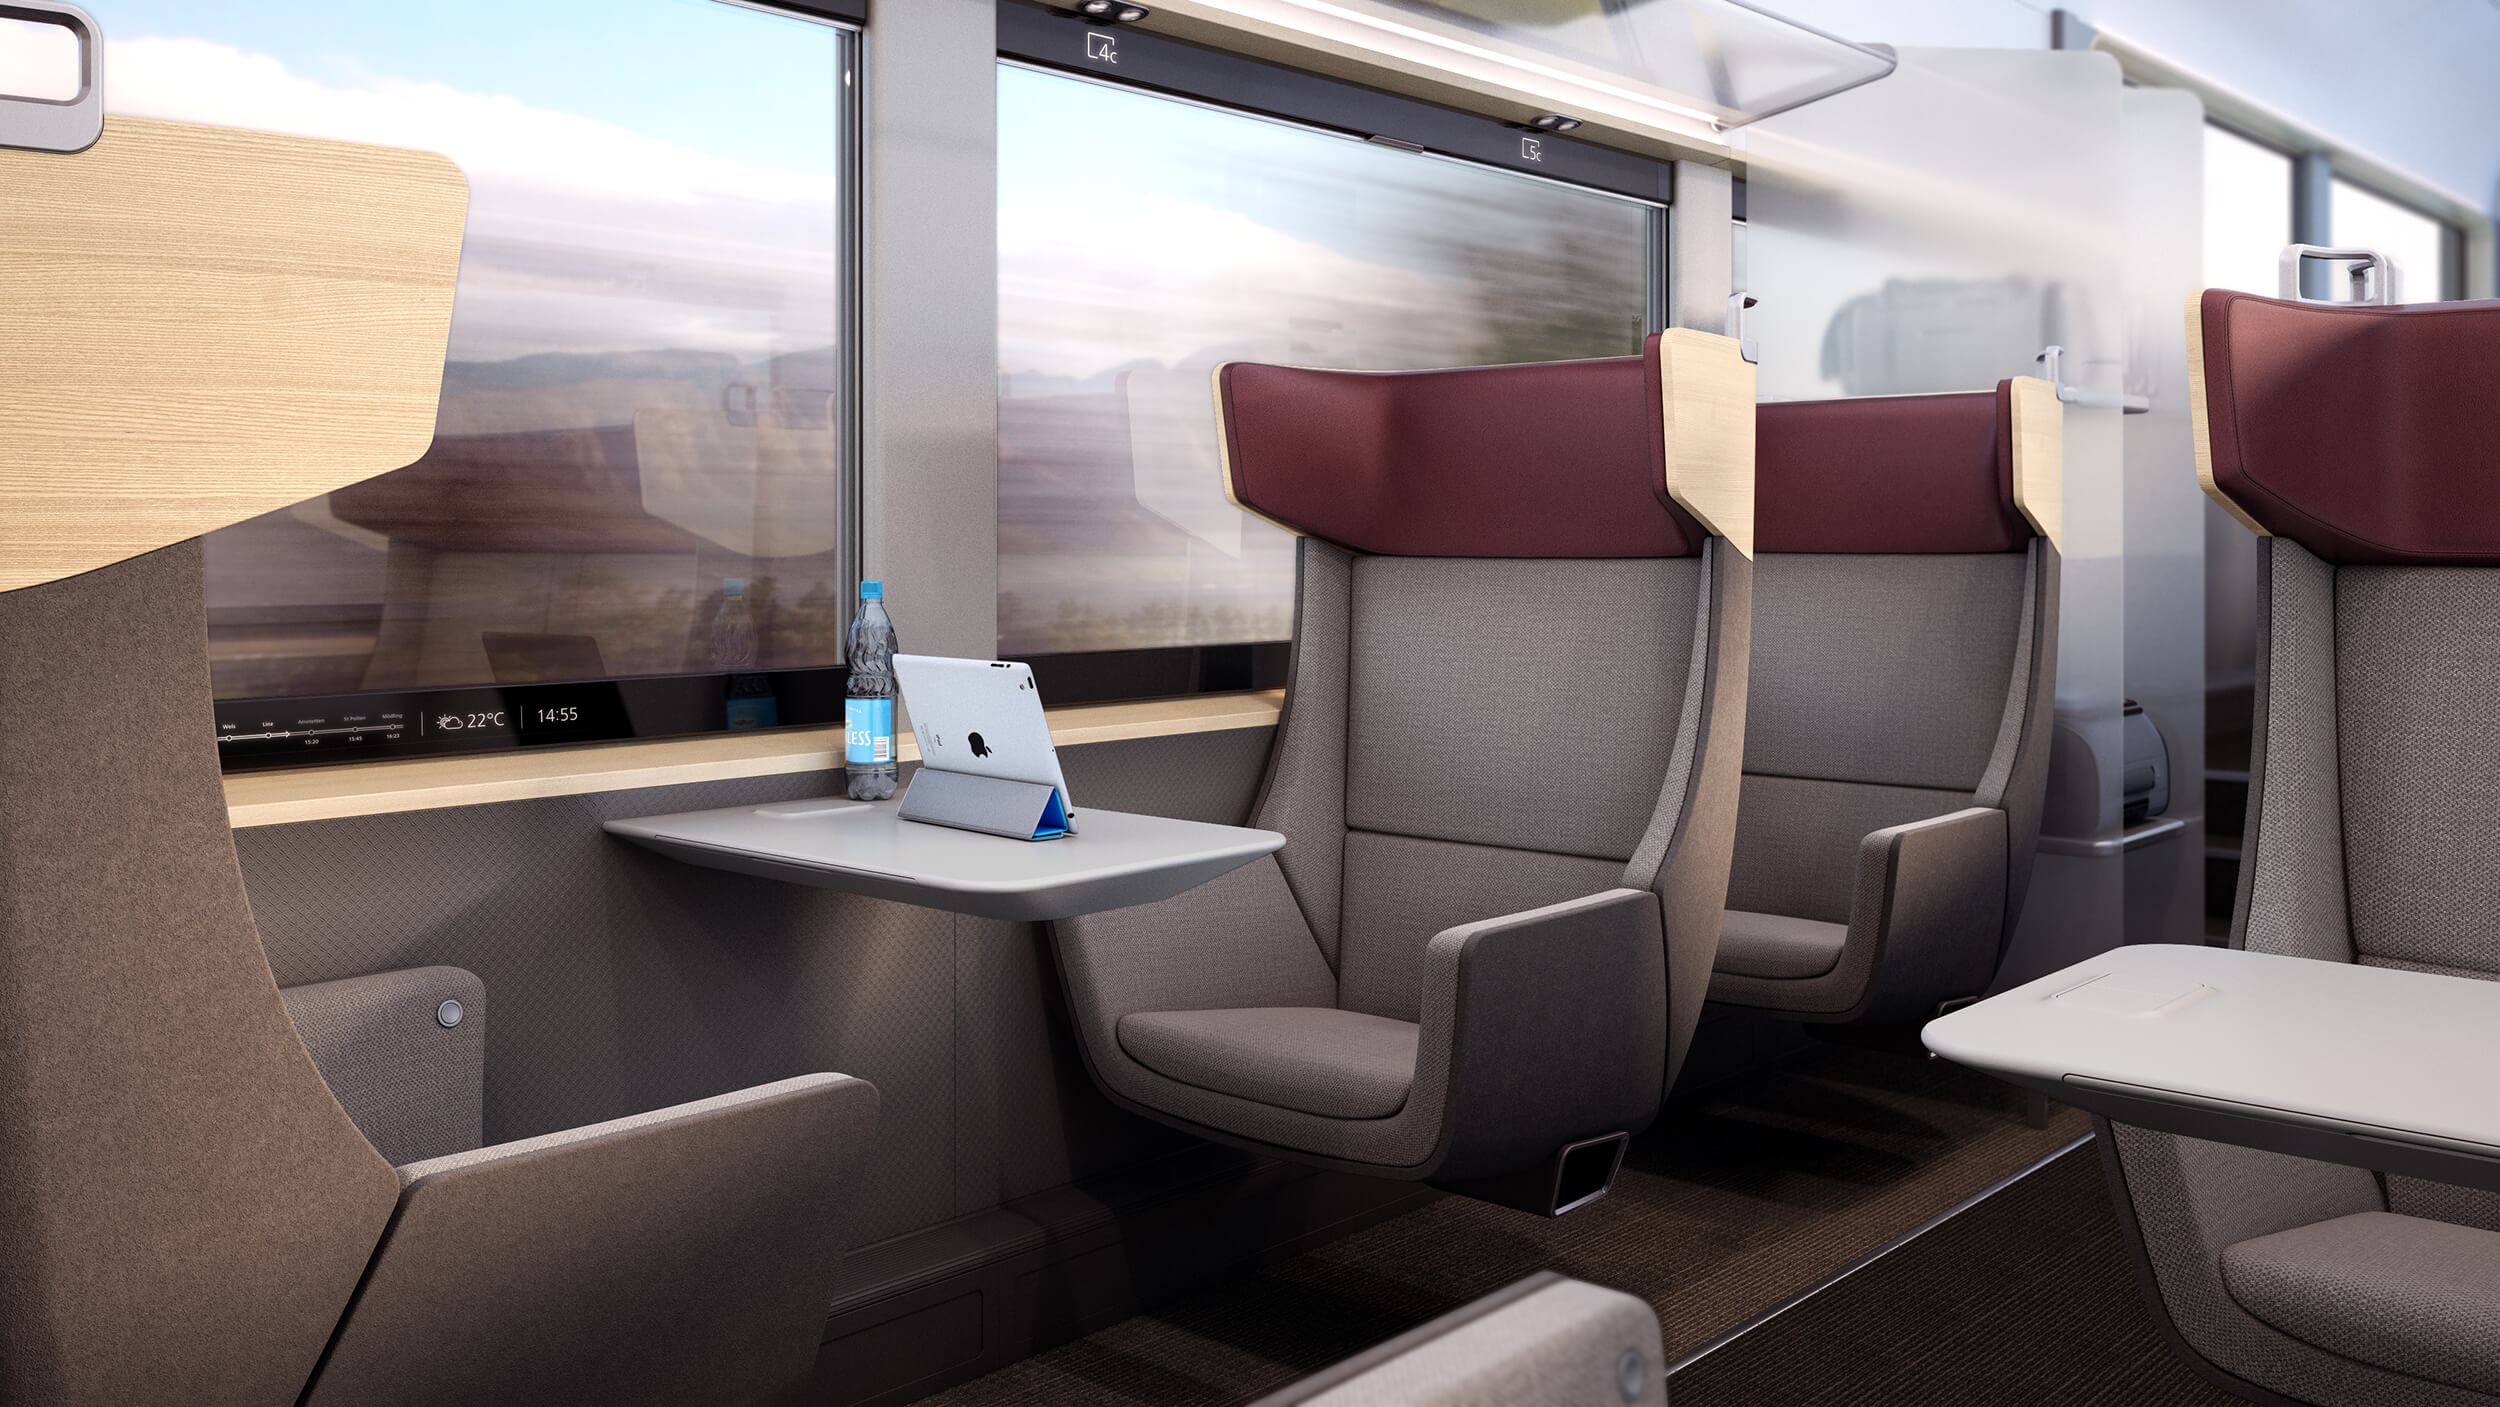 A first class train carriage. A small table features between two seats facnig one another. A tablet and water bottle are placed on the table. Large windows feature on the side